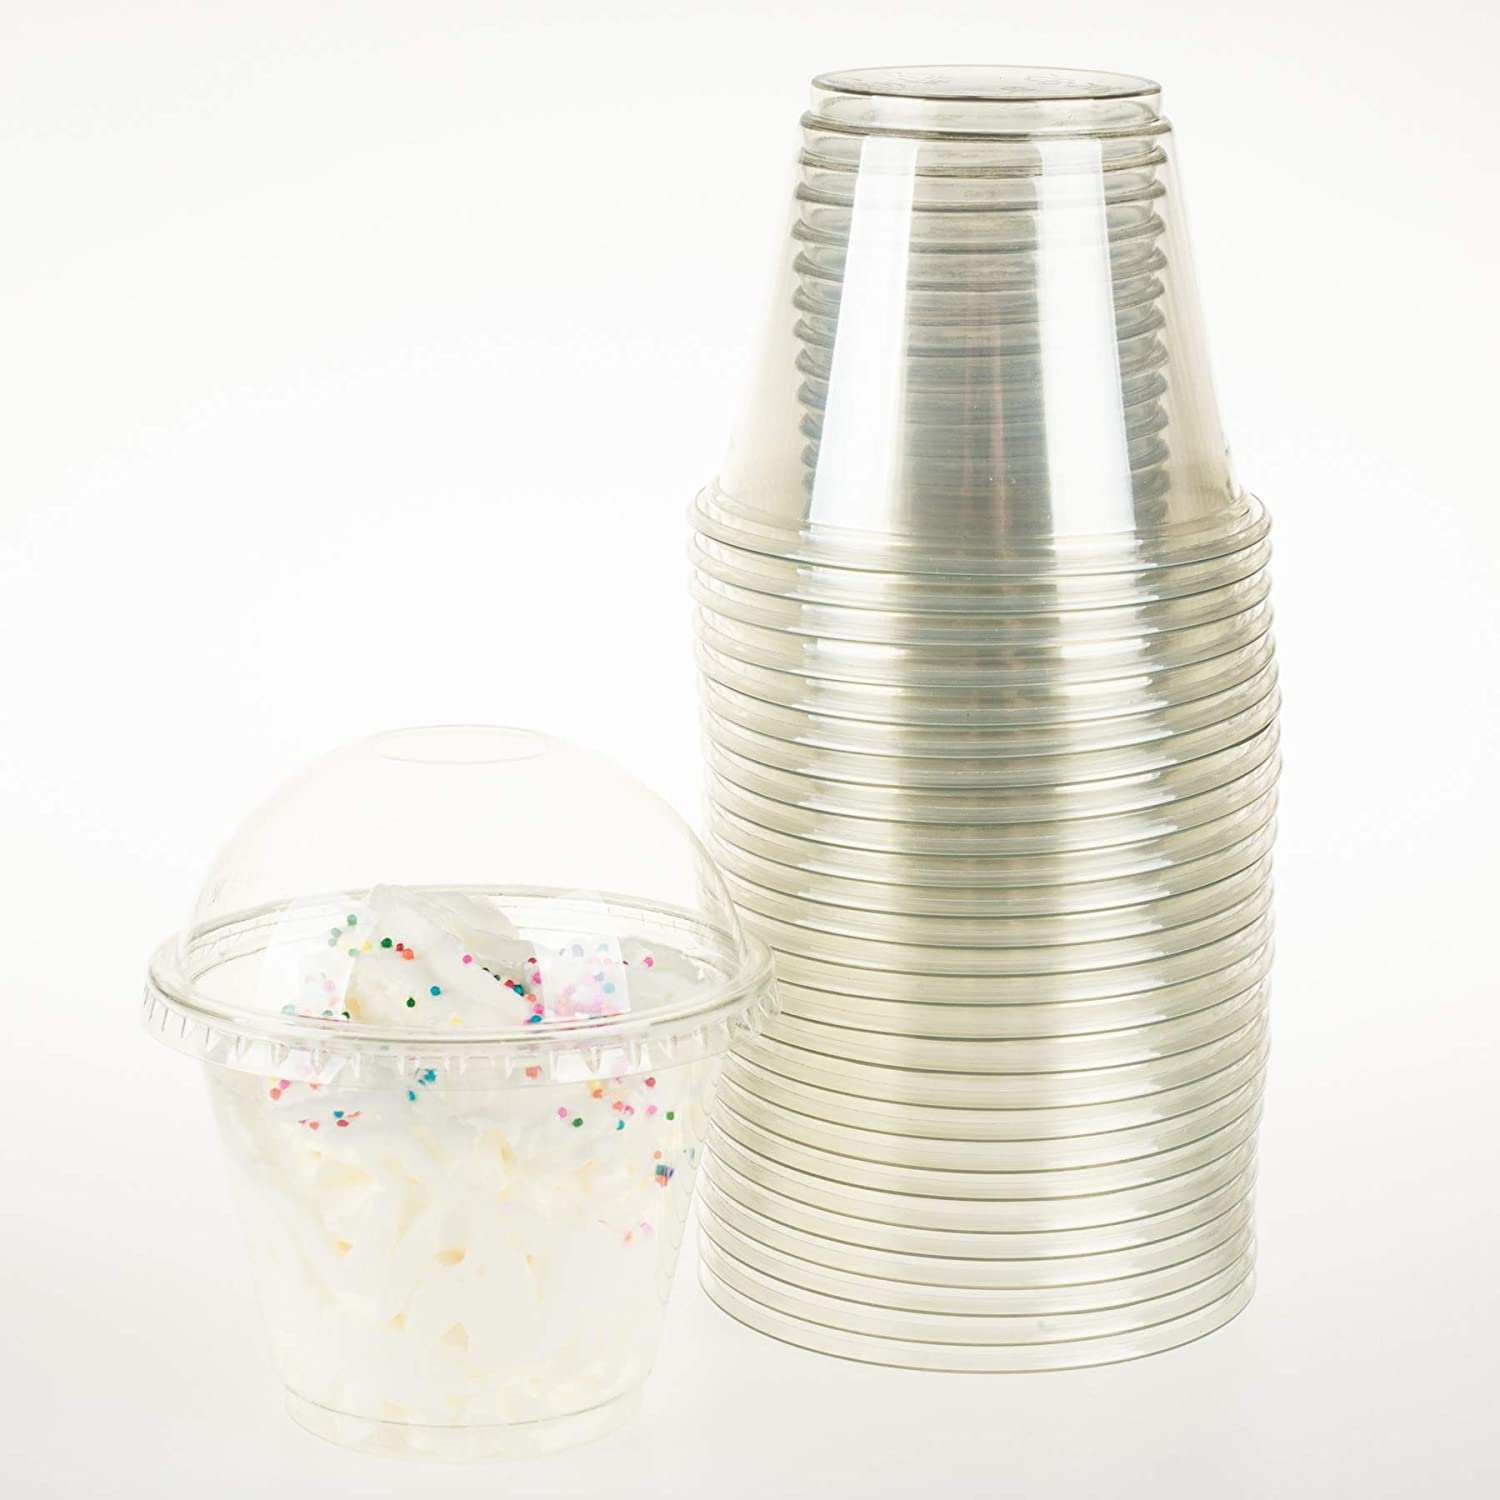 GOLDEN APPLE, 9oz-25sets Clear Plastic Cups with Clear Dome lids No Hole